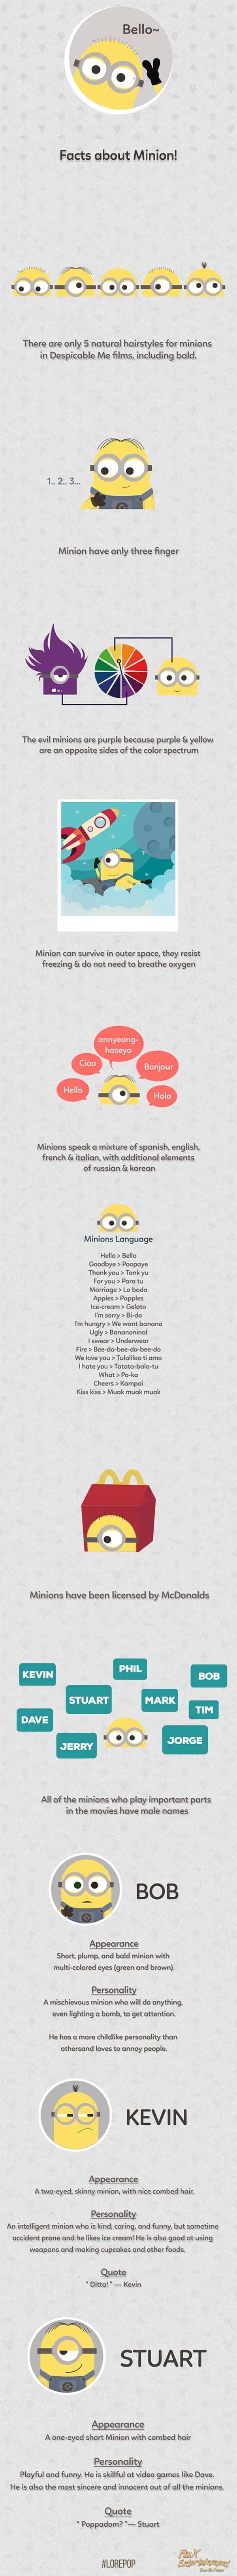 Fun Facts About The Minions That You Might Not Know